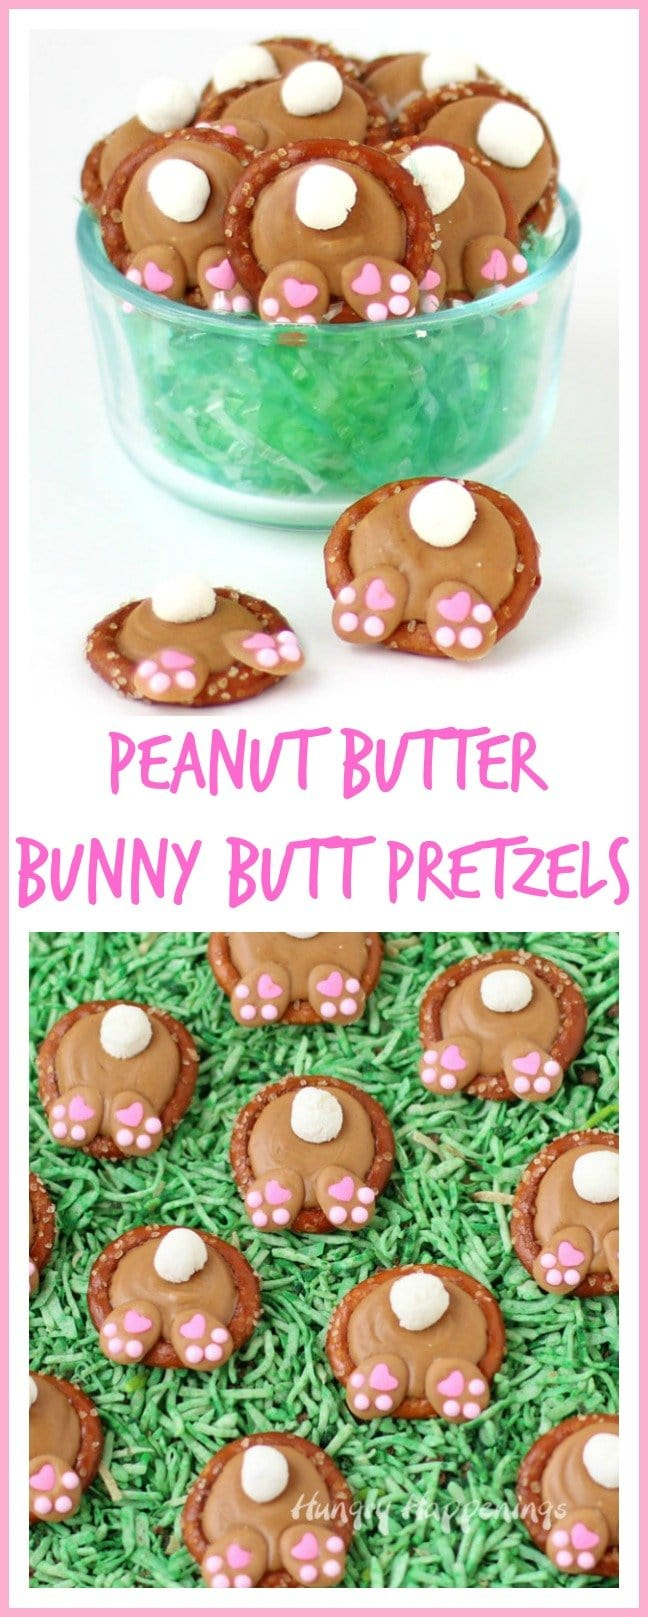 nut Butter Bunny Butt Pretzels make adorable additions to your Easter baskets.